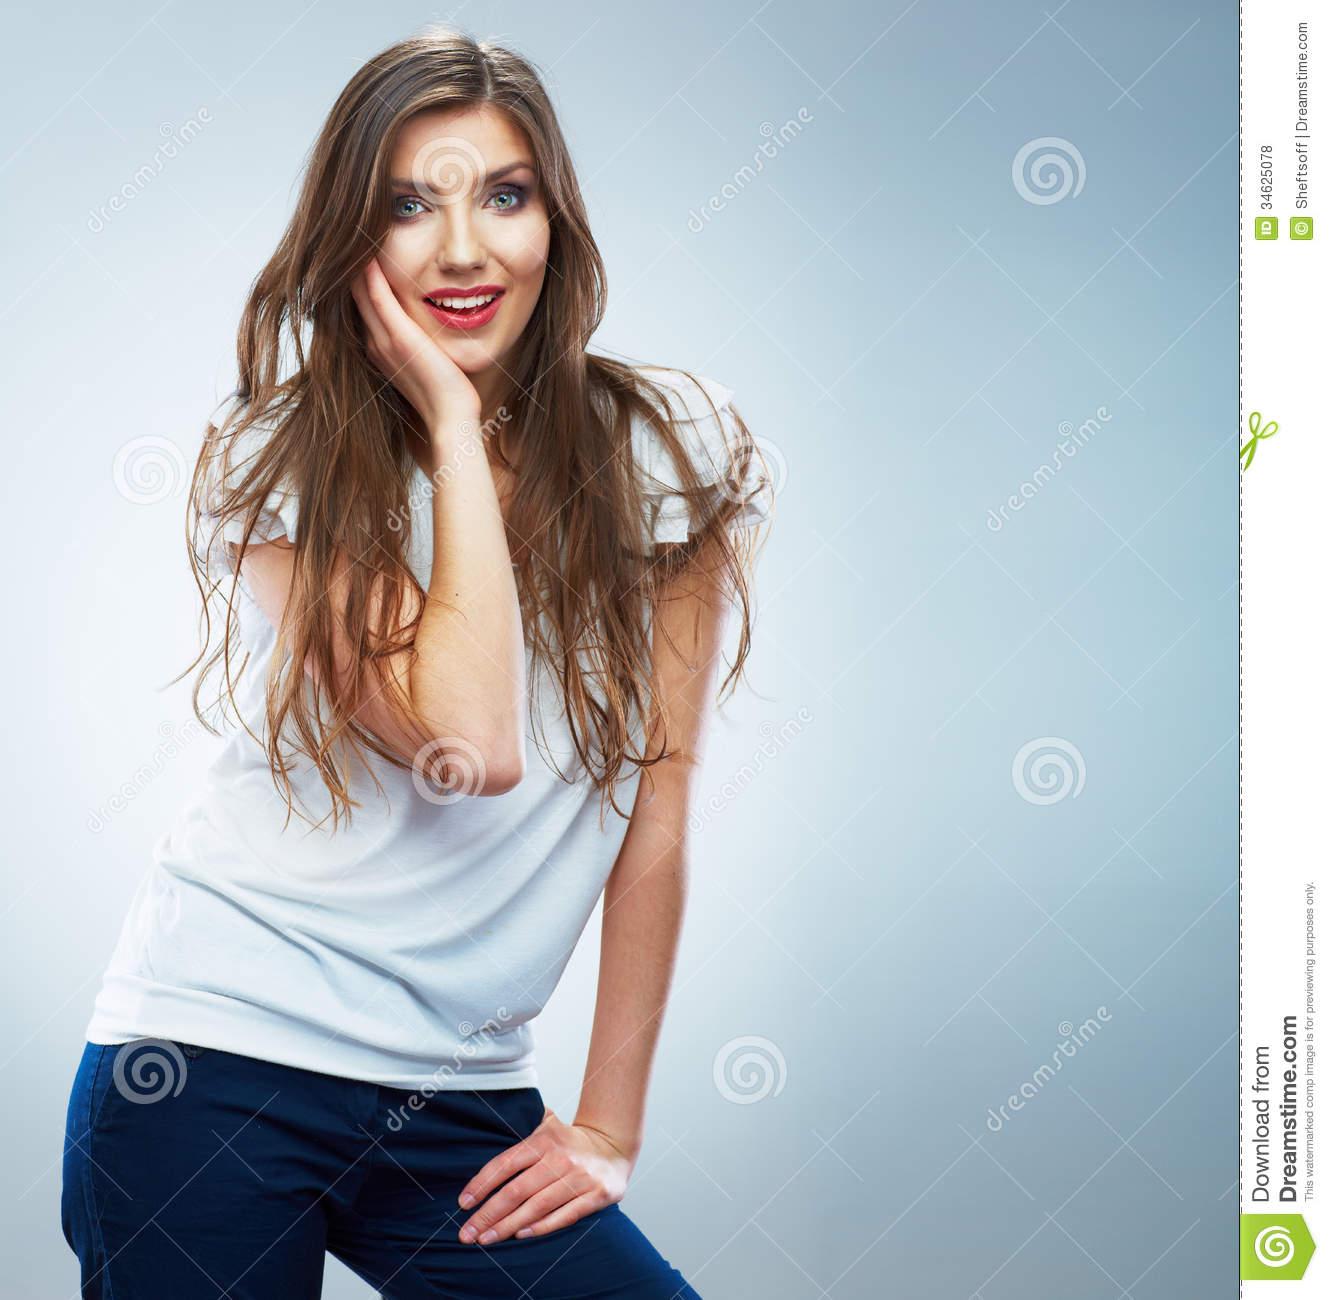 Photography Studio Floor Plans Young Smiling Woman Portrait Isolated Casual Style